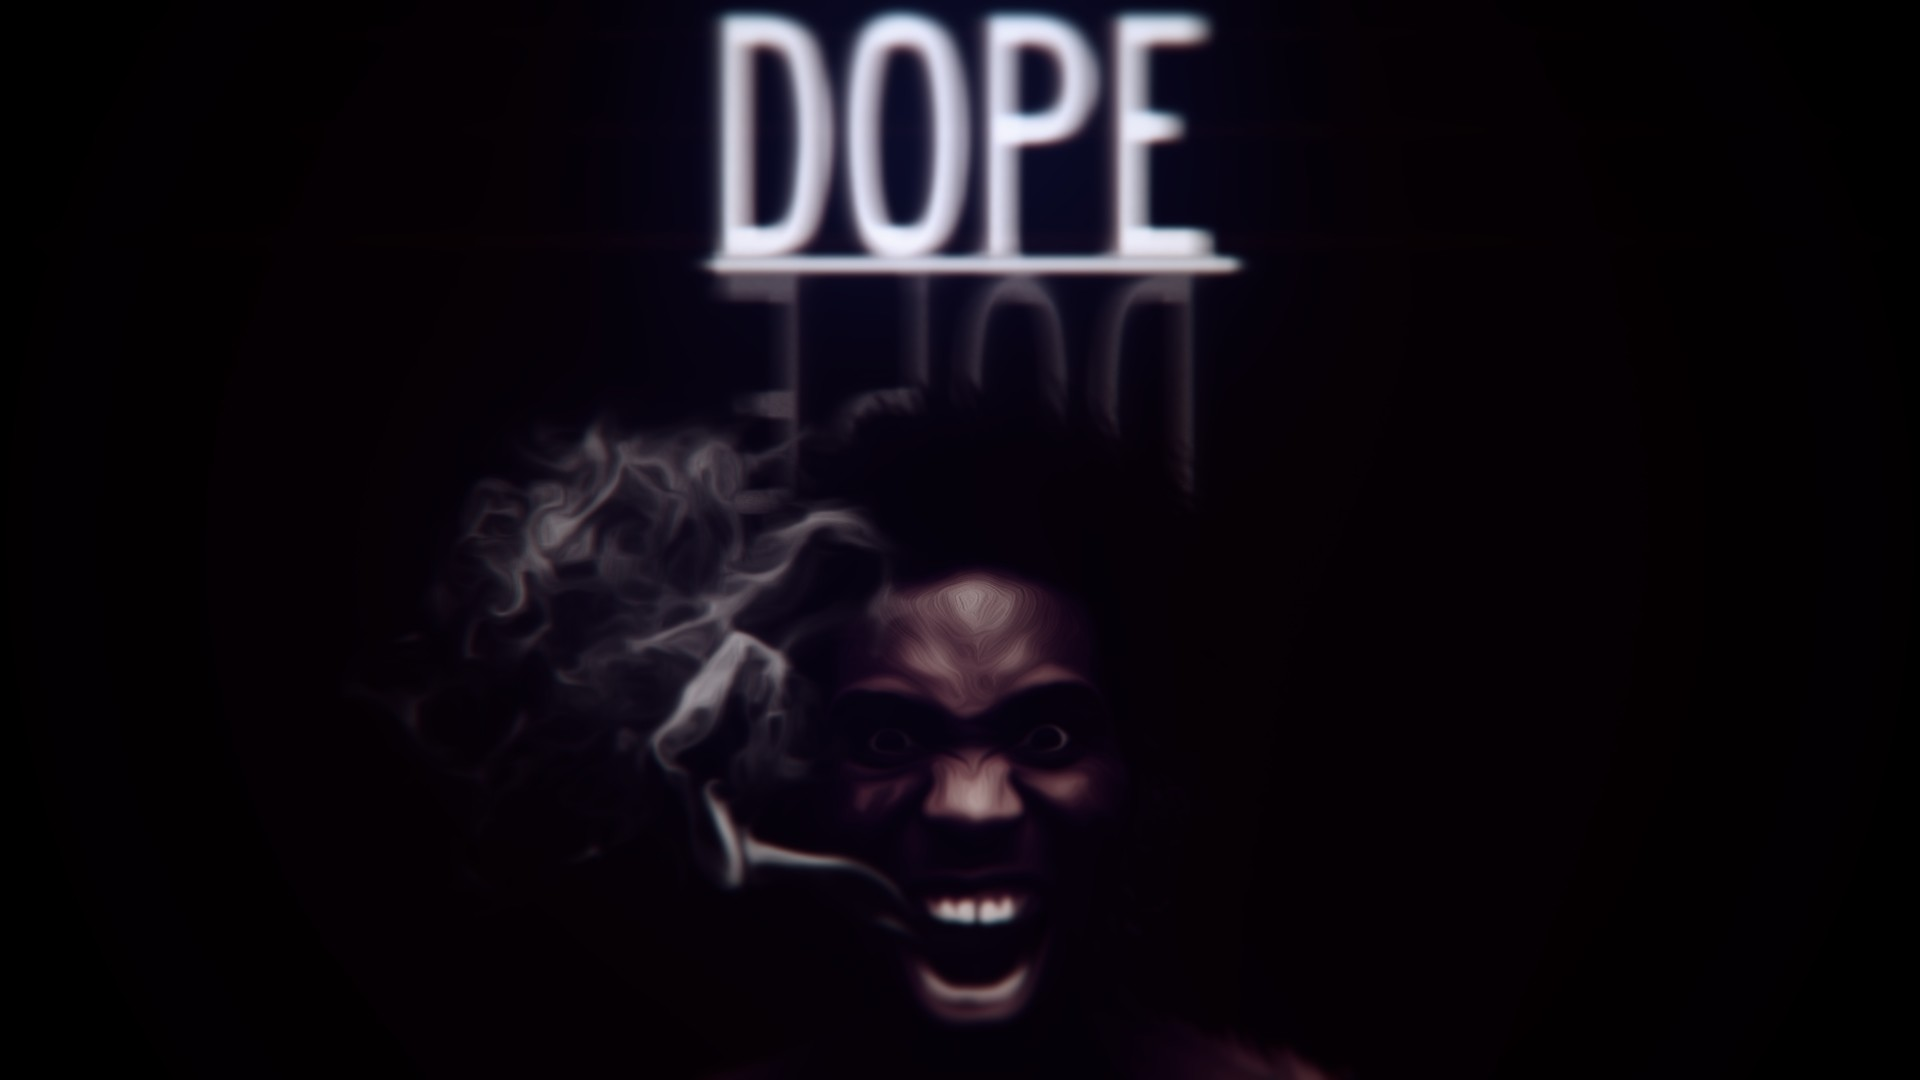 dope tumblr backgrounds 83 images